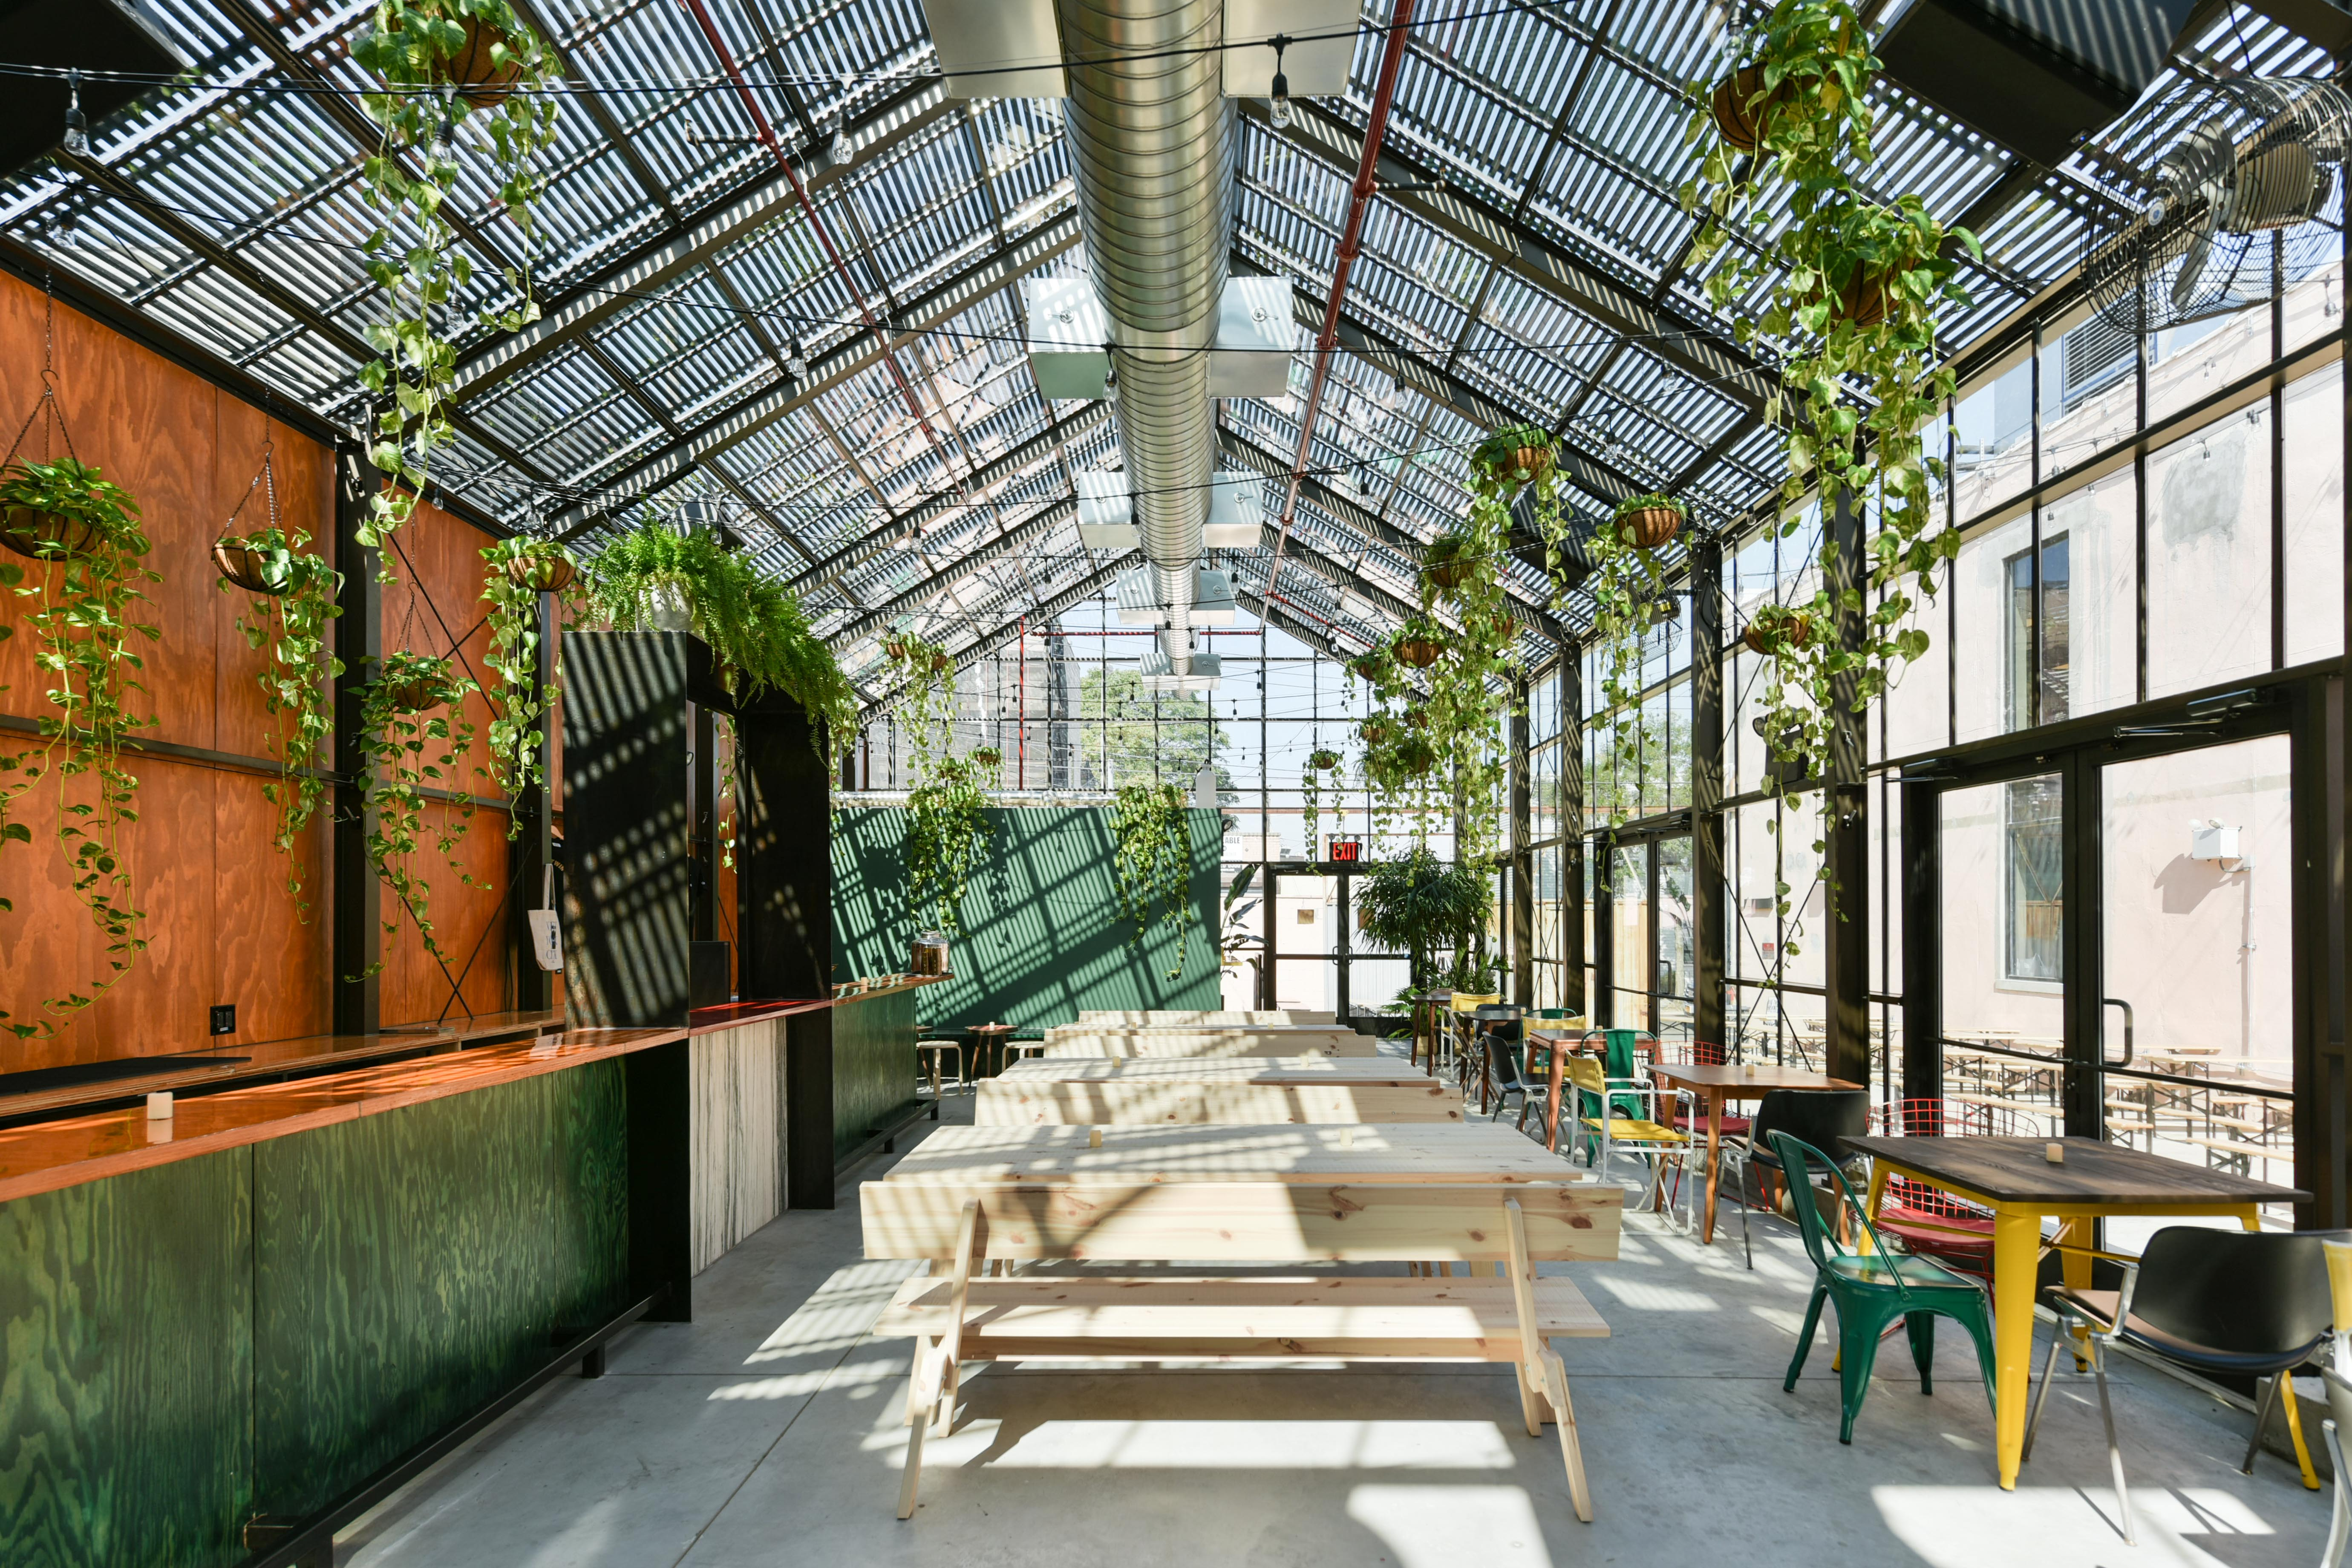 The inside of a greenhouse with plants hanging from the ceiling and wooden tables